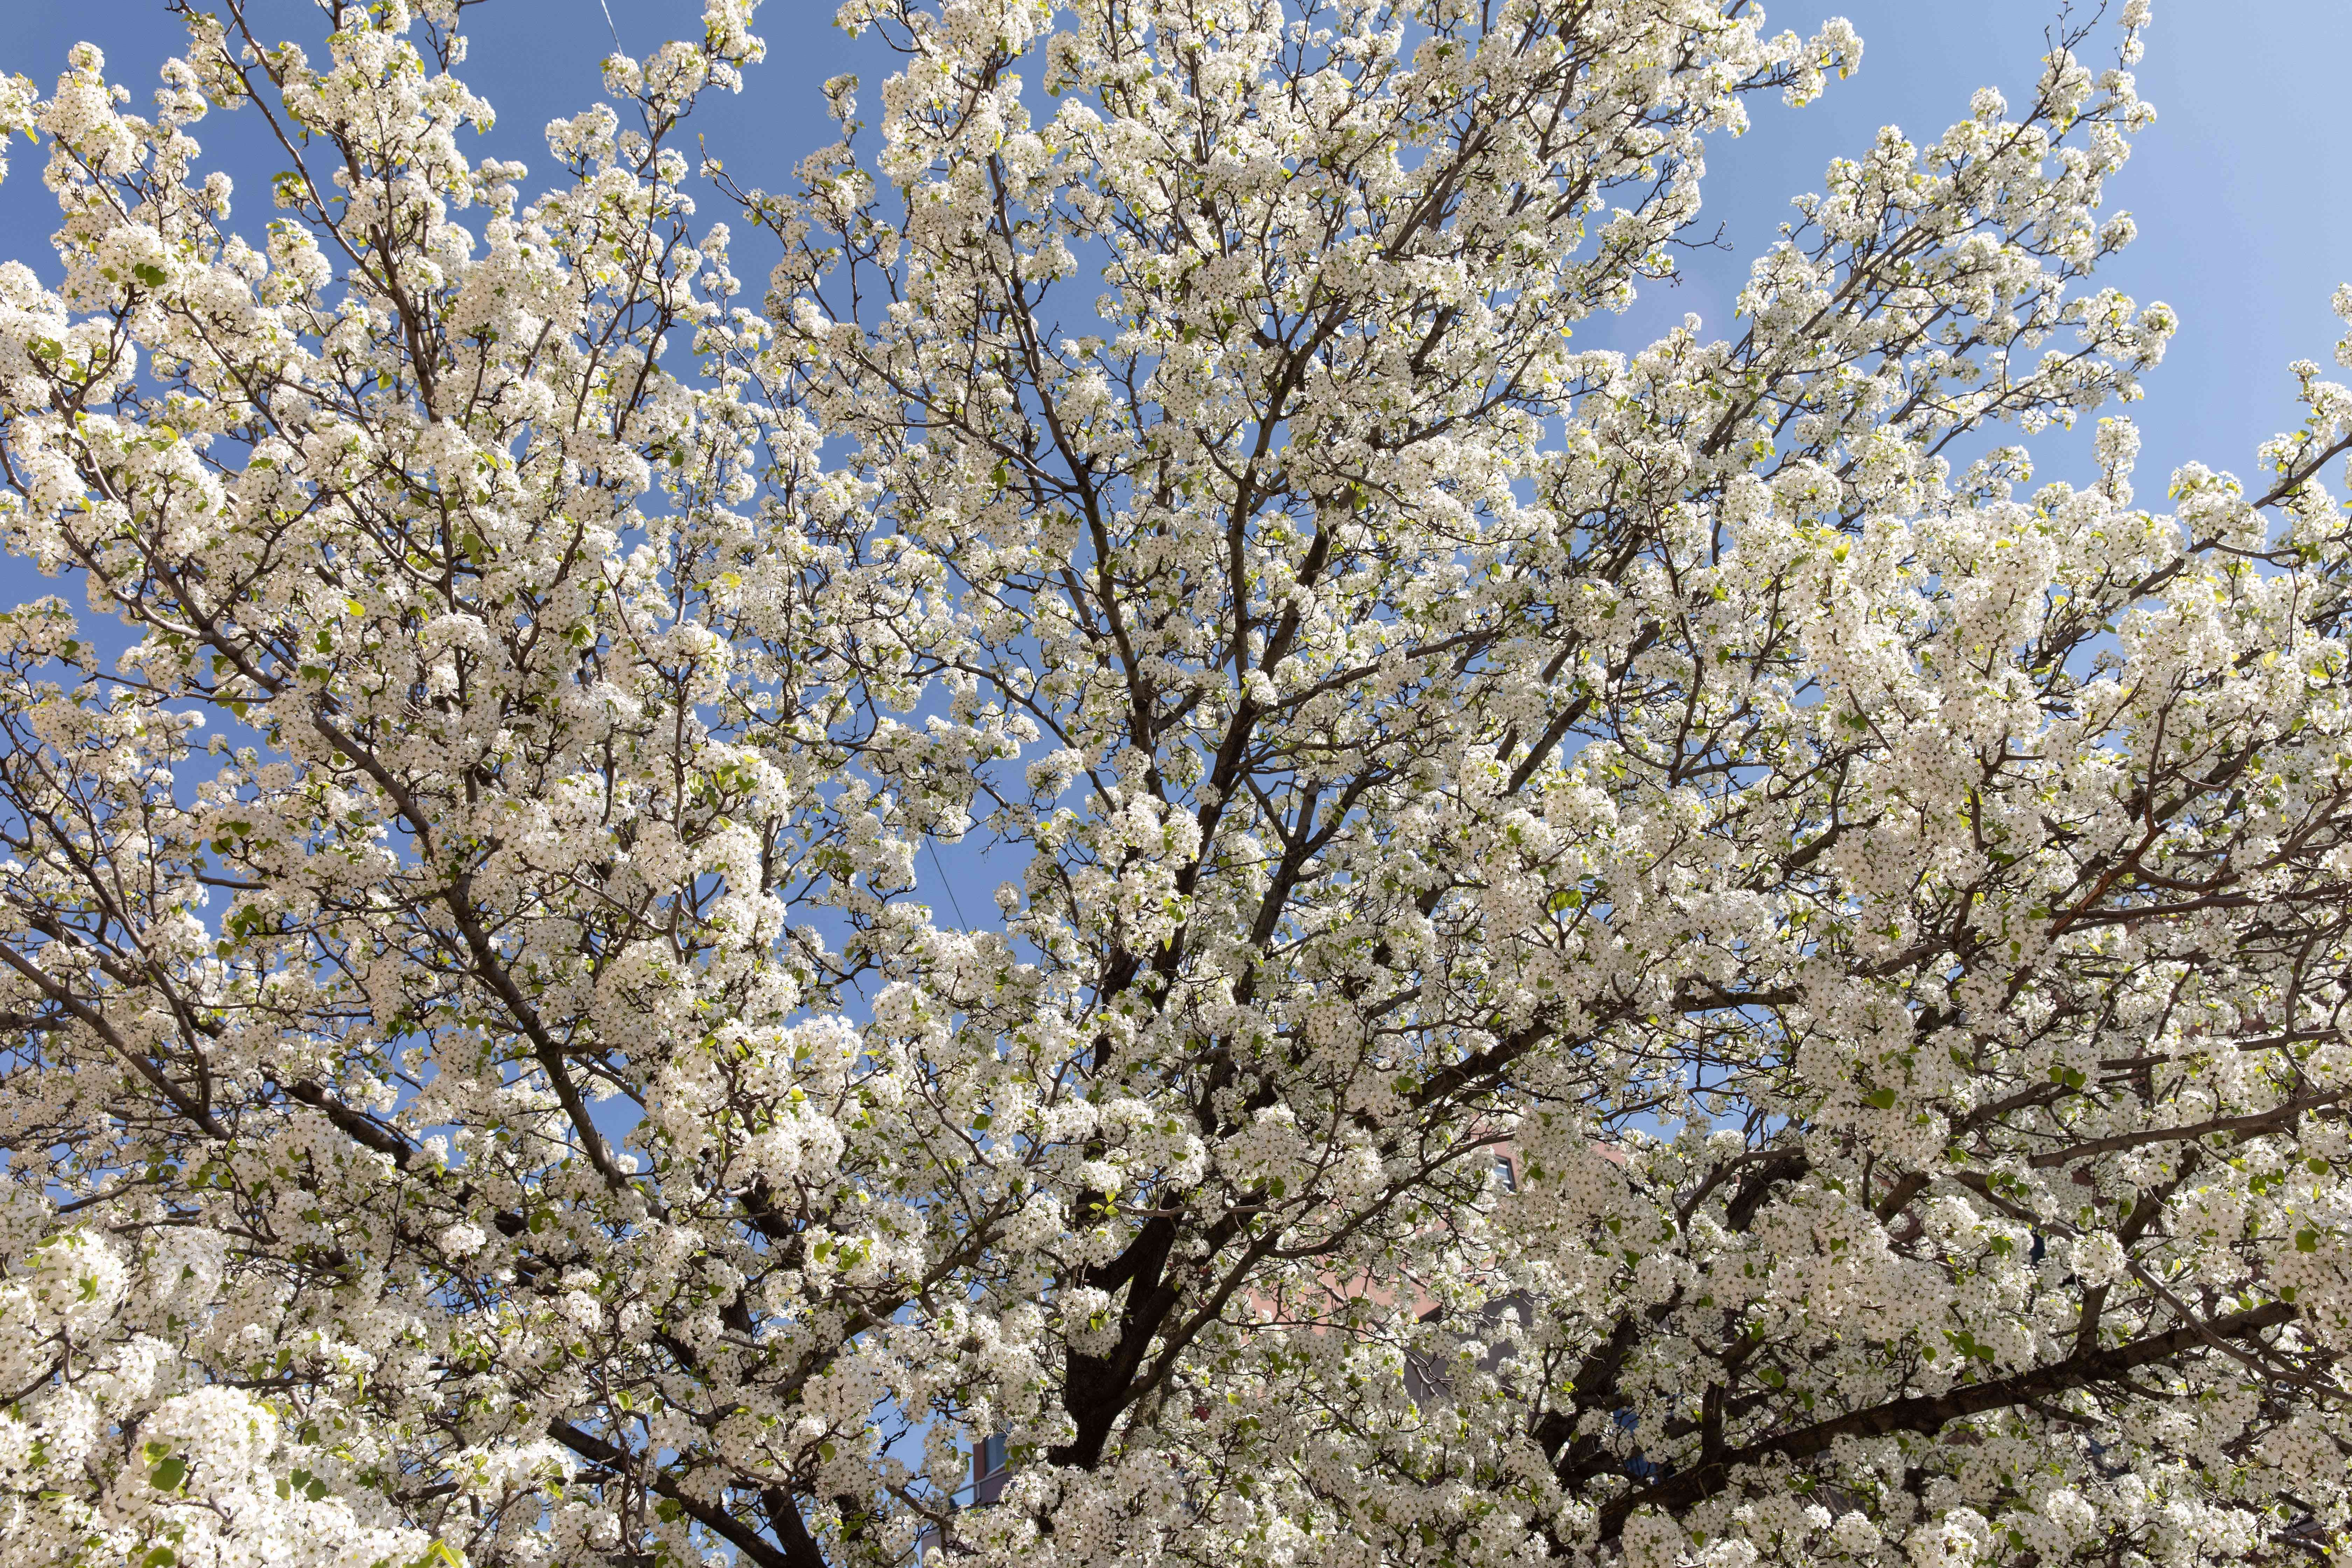 Callery pear tree with dark branches and small white flower clusters